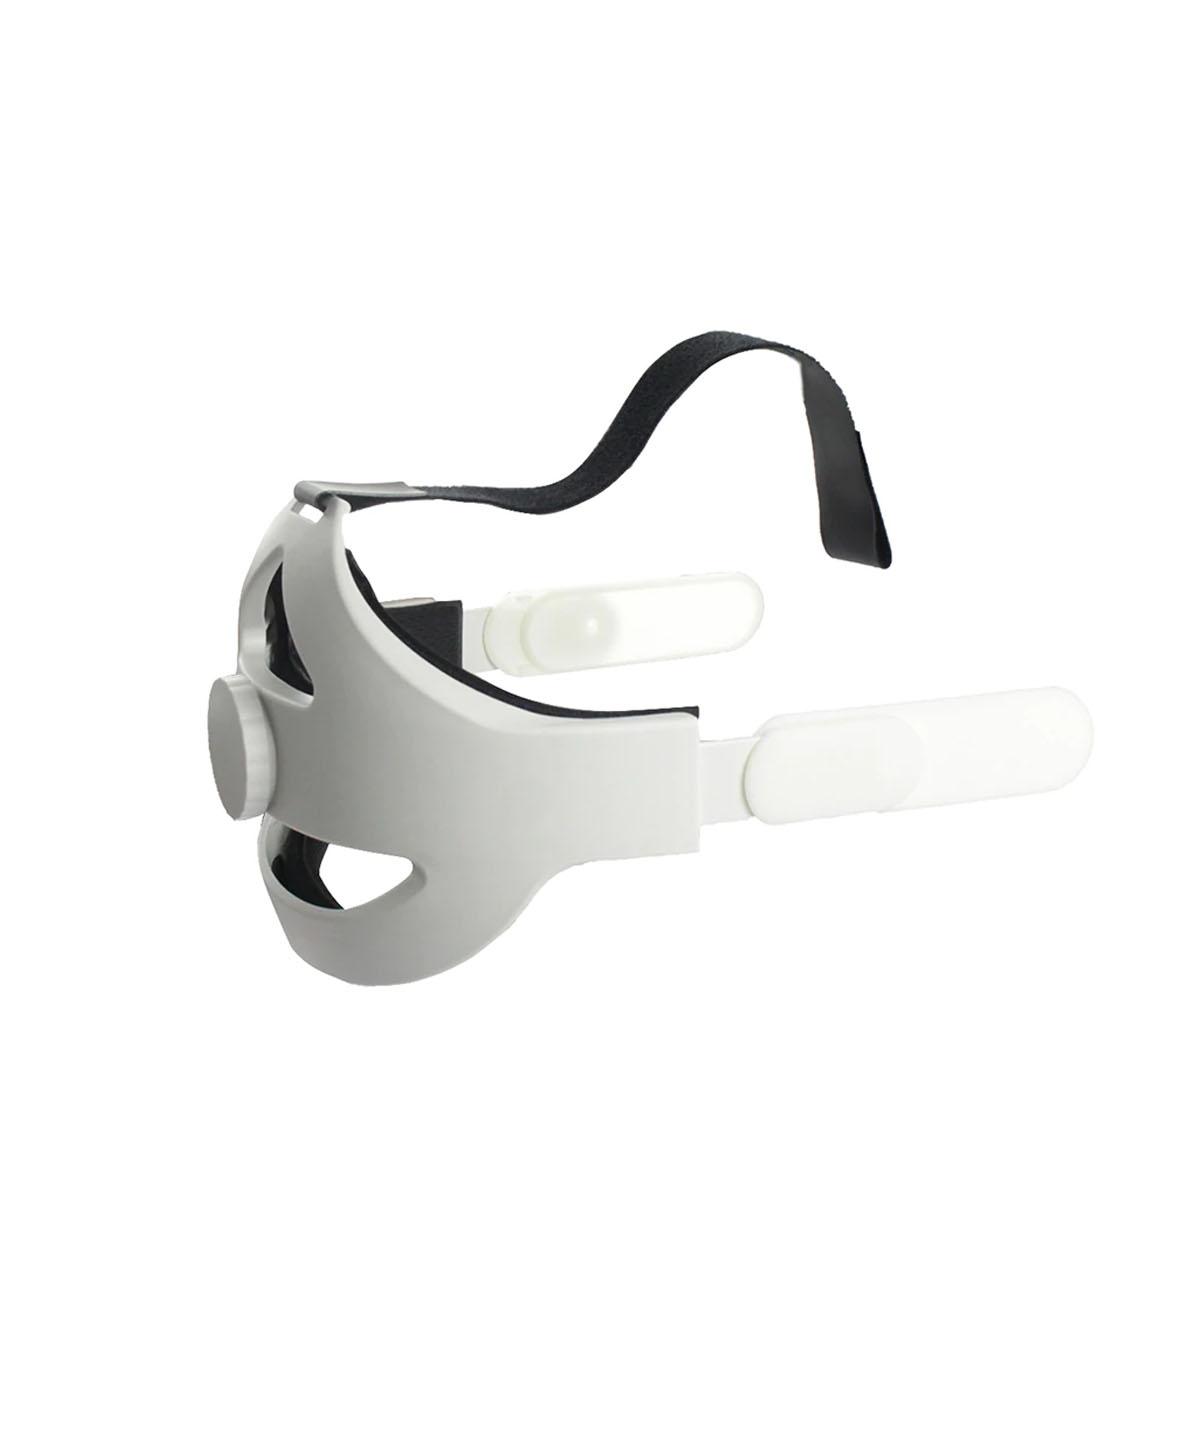 Head Strap For Oculus Quest 2 Drstrap